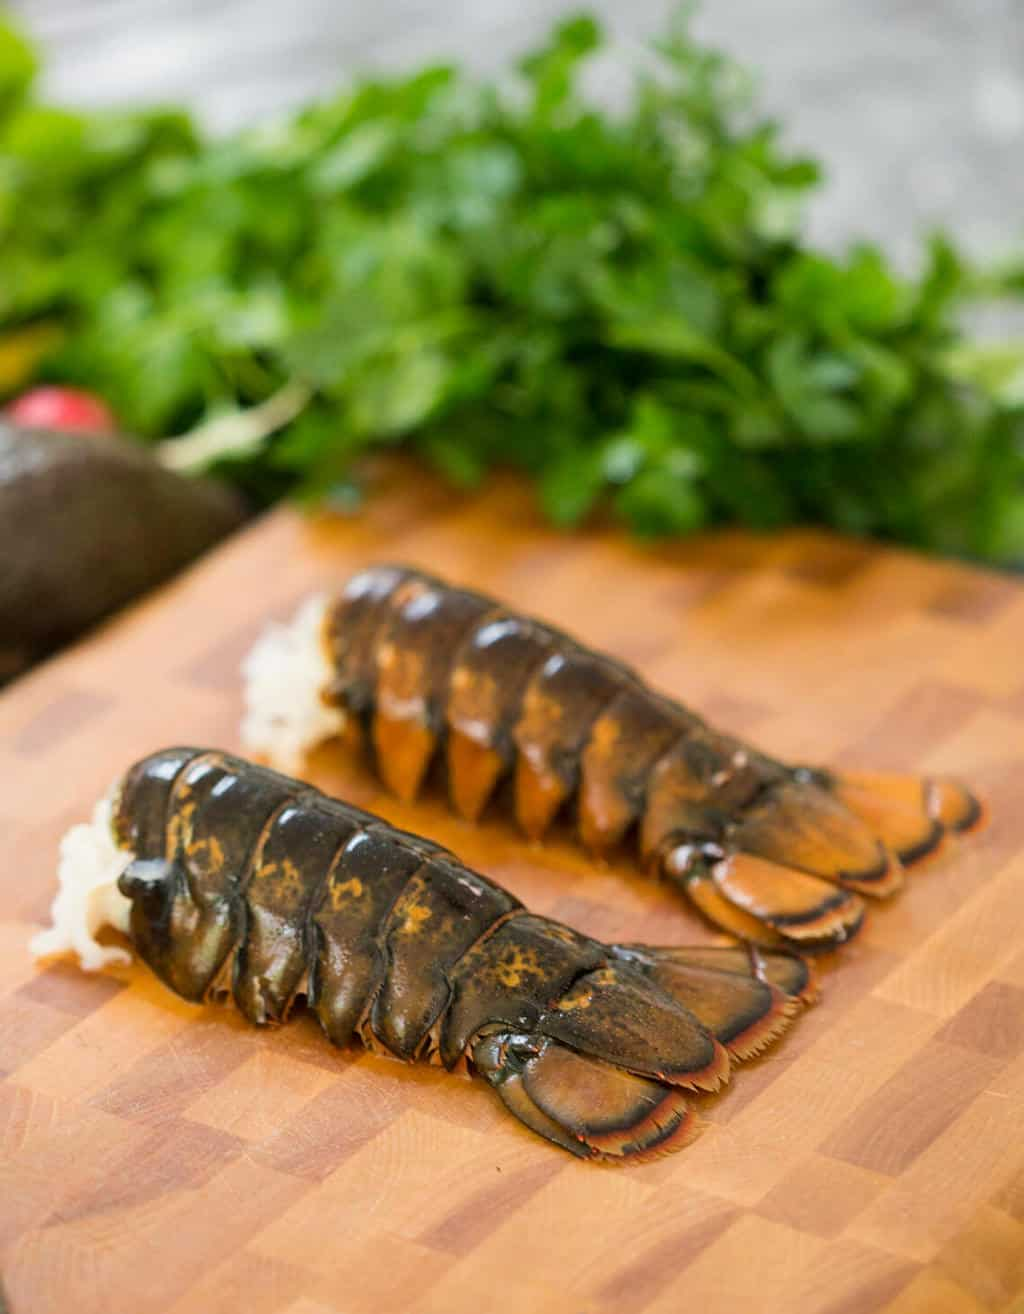 A photo of two lobster tails.